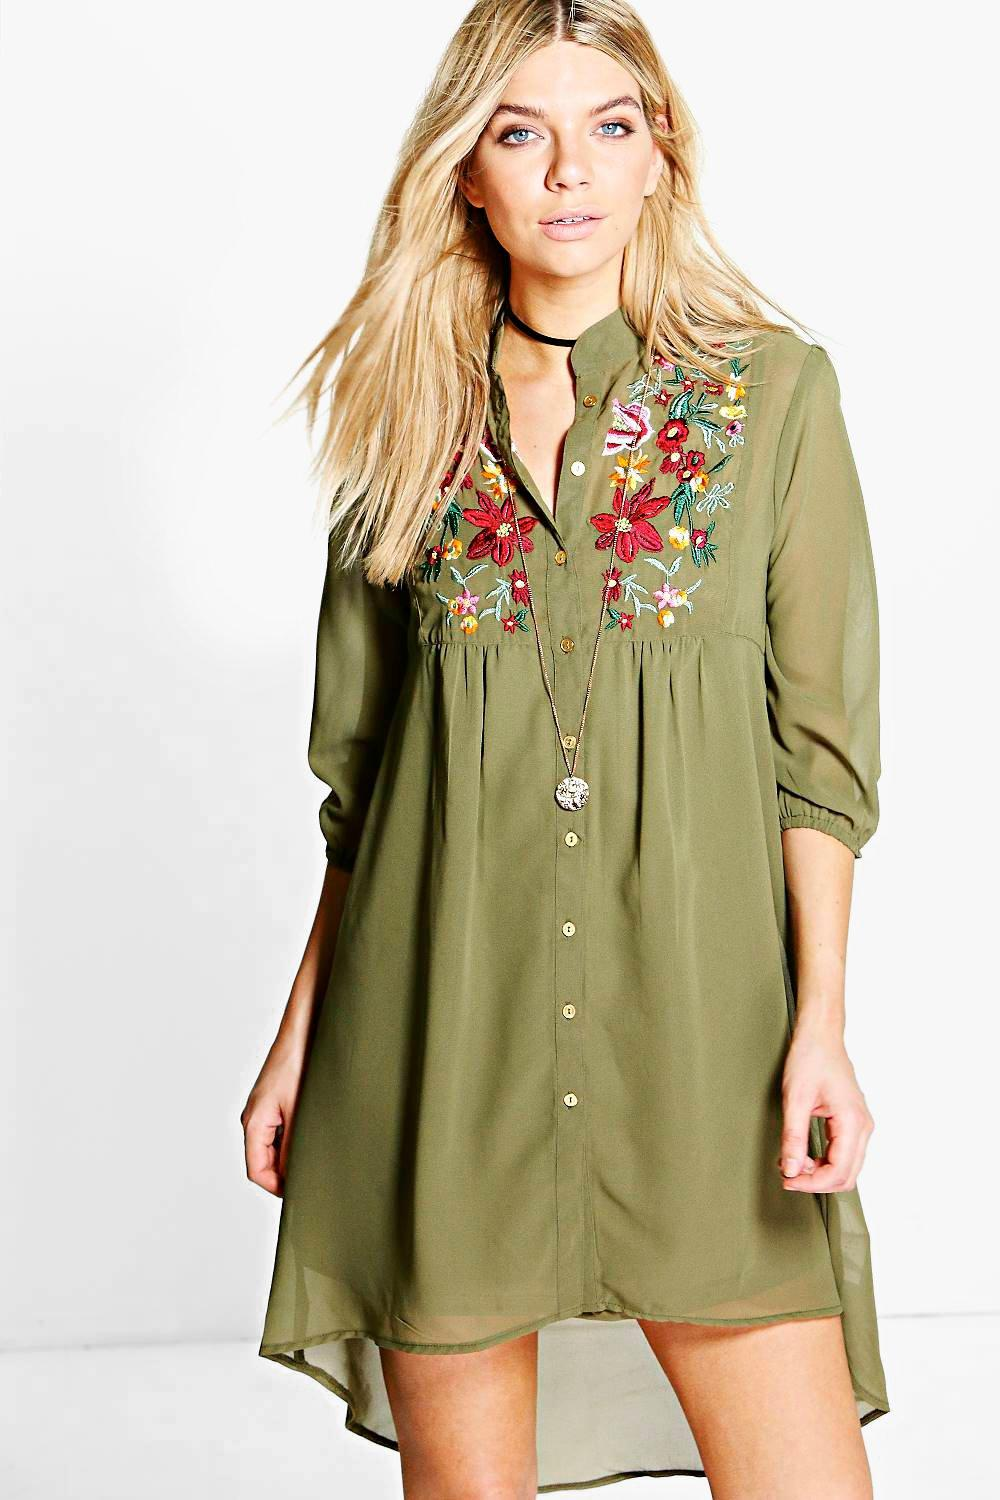 Boohoo Womens Zigournie Embroidered Shirt Dress | EBay